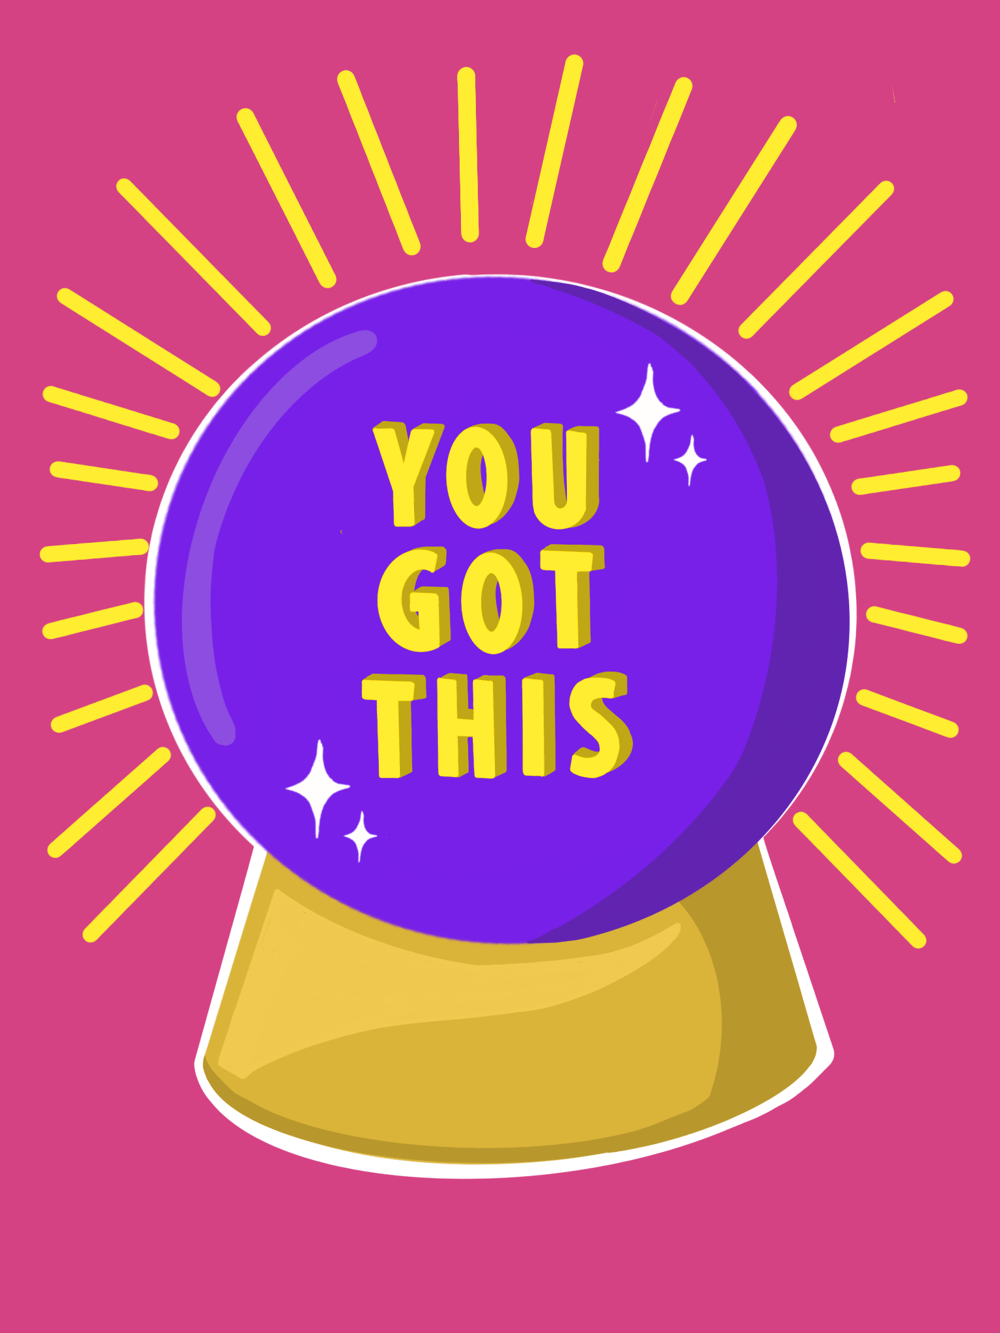 You Got This - image 2 - student project